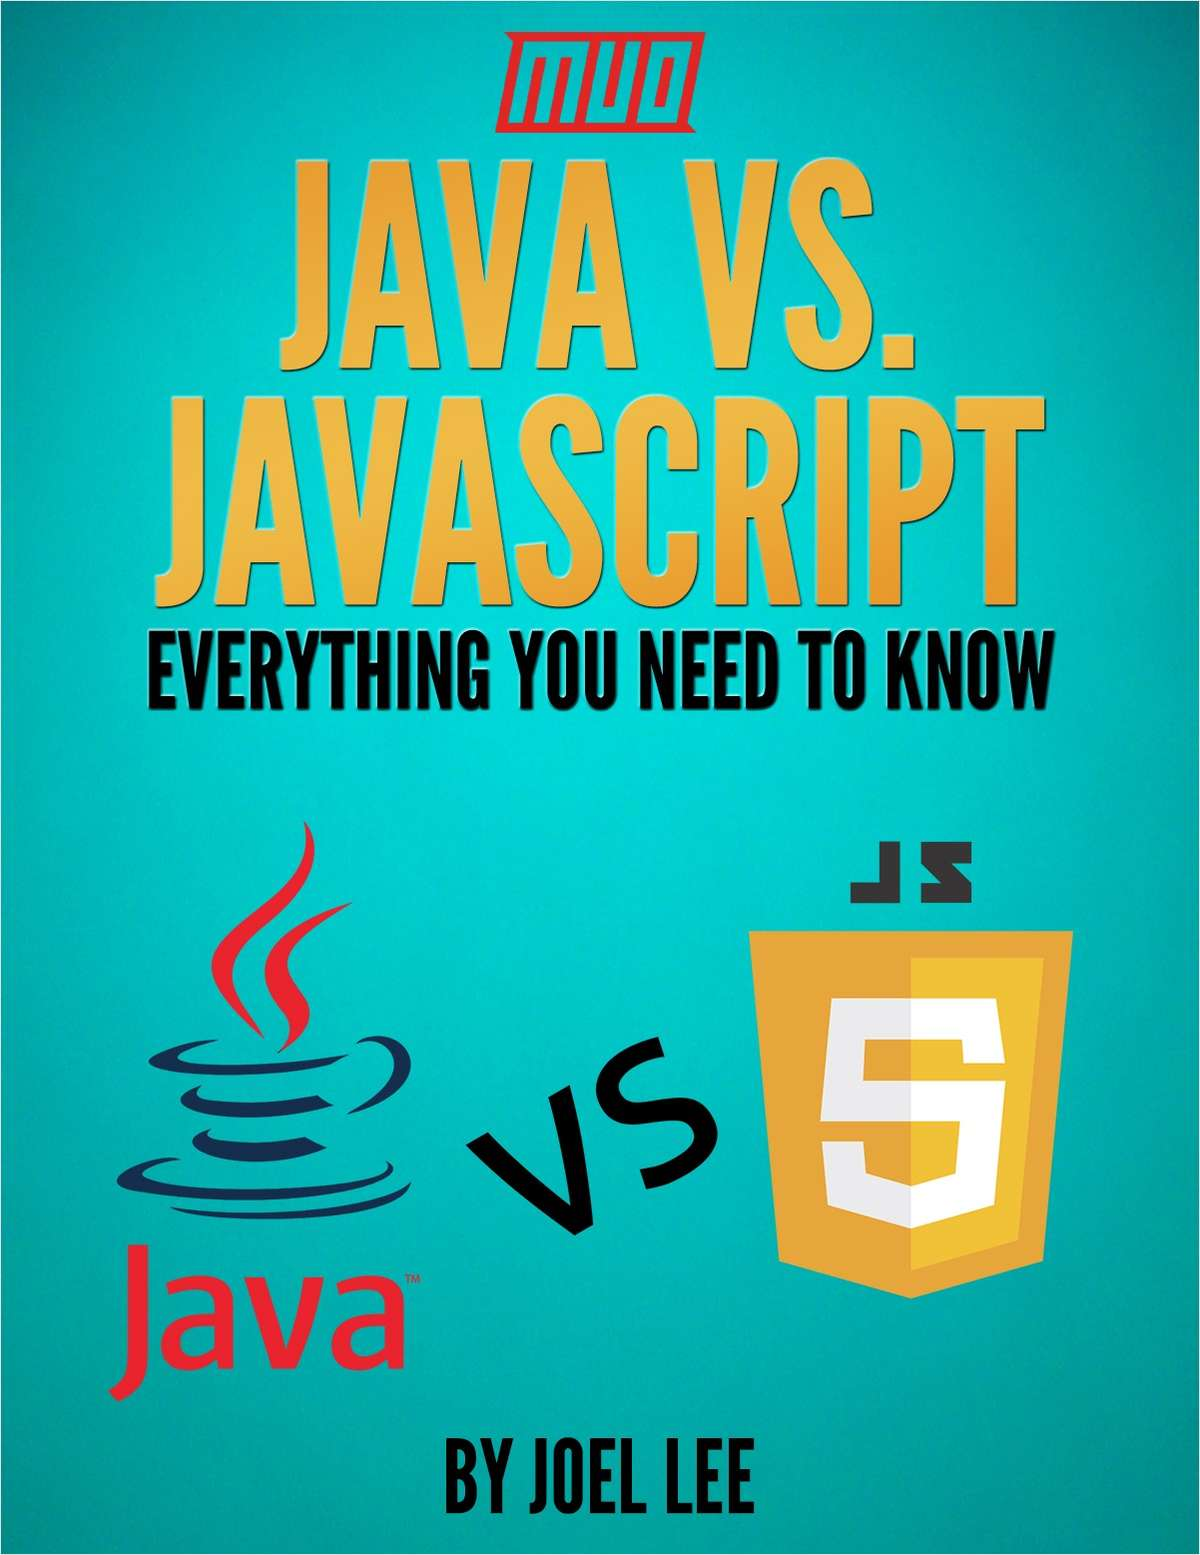 Java vs. JavaScript - Everything You Need to Know